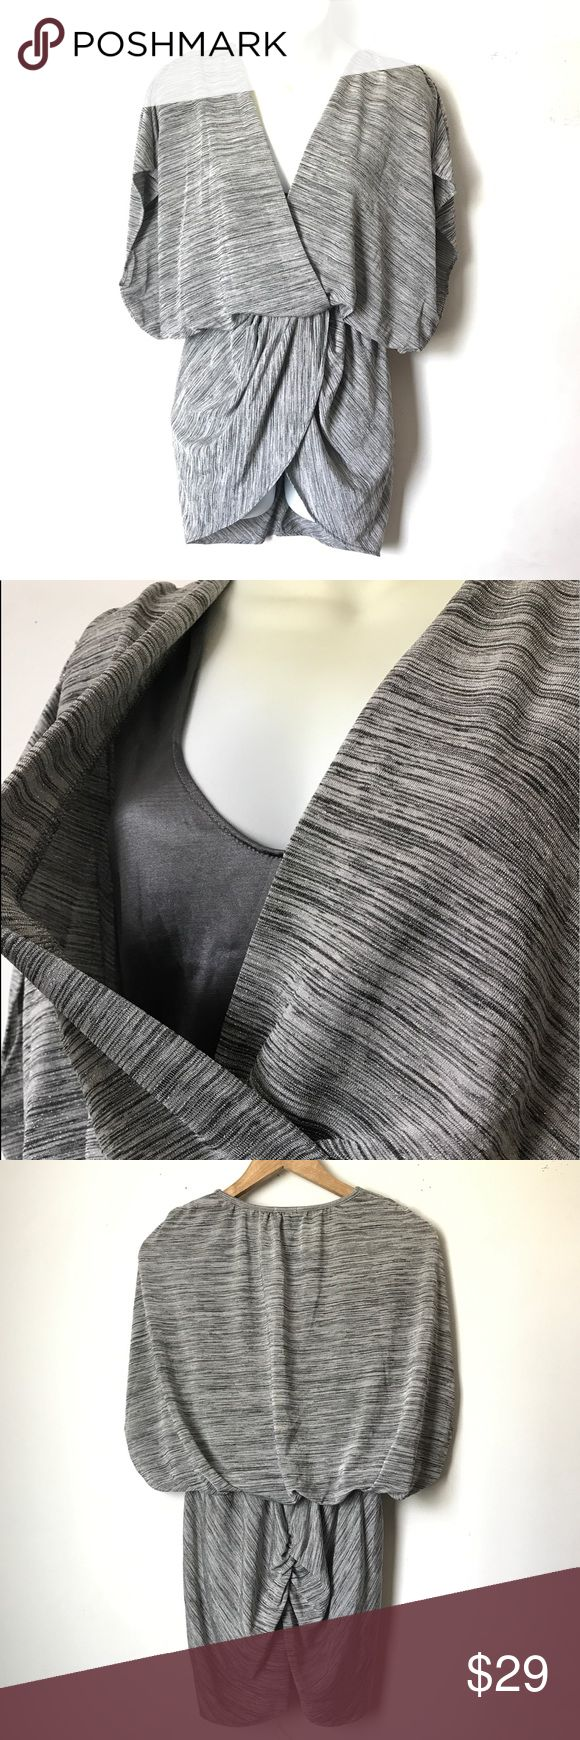 """Bebe Batwing Tunic Top 2B Bebe Women's Batwing Sleeve Tunic Top Blouse Shirt  Size- Small Color- Metallic Gray  Condition- New Without Tag  APPROXIMATE MEASUREMENT ( lying flat) Armpit to Armpit & Bust-Undefined Waist- Stretchable 13"""" across From Shoulder to Hem-30.5""""  A-546 2B Bebe Tops Tunics"""